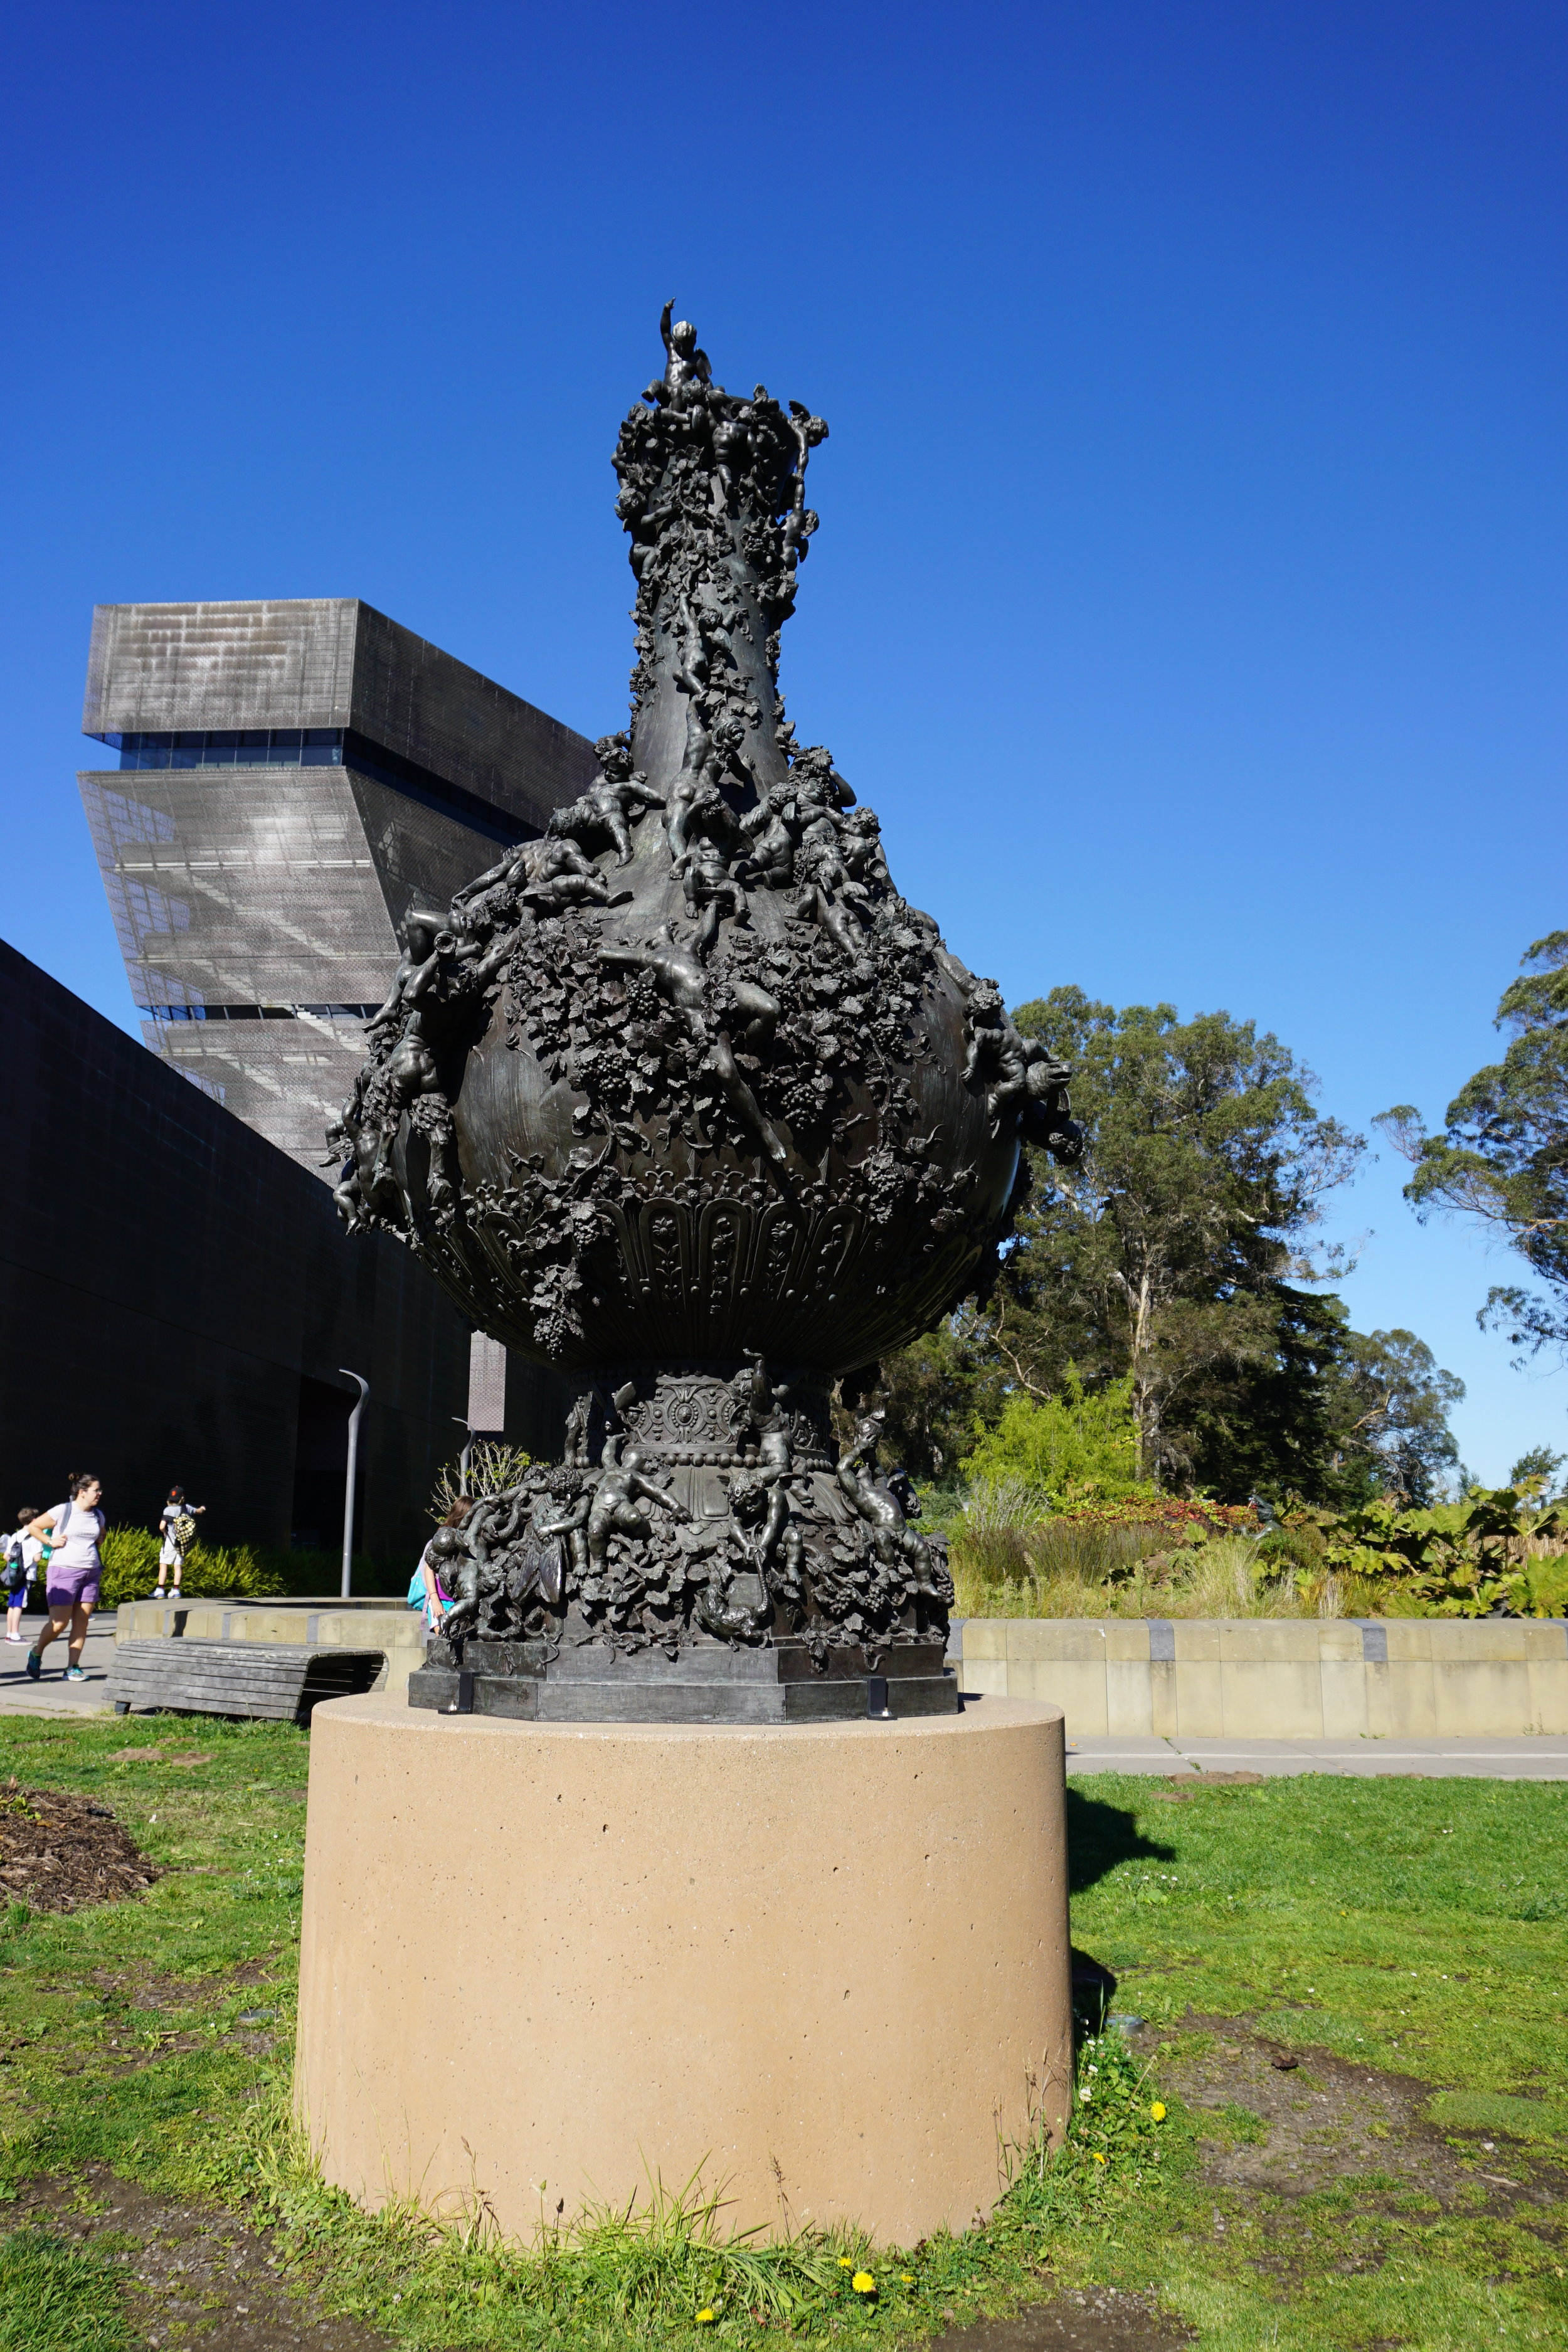 Statue Honoring Bacchus in front of the De Young Museum.